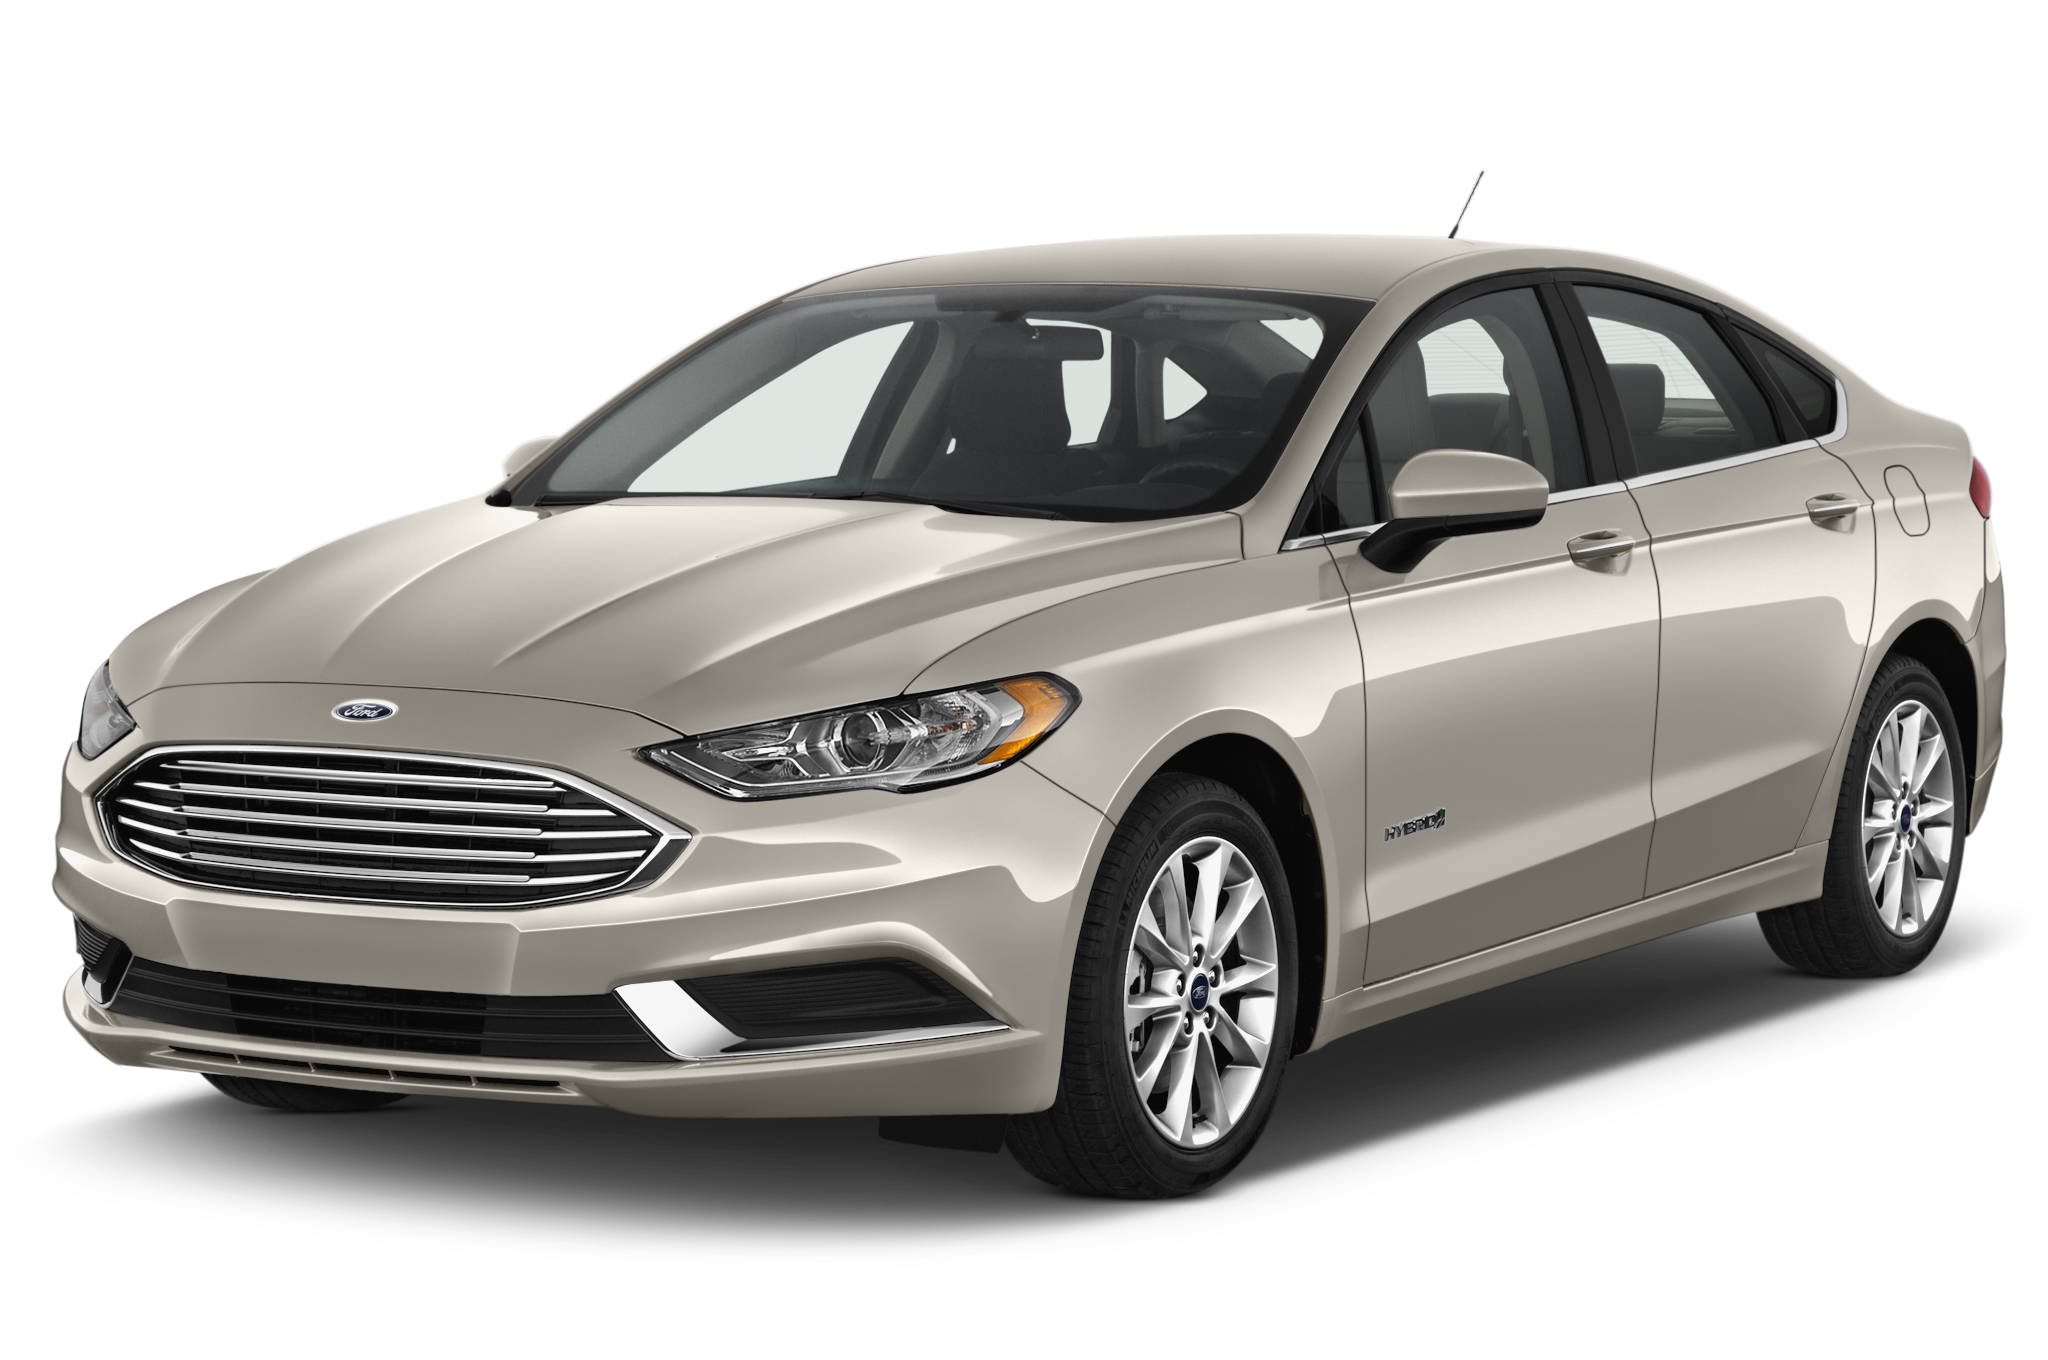 Ford fusion png. Hybrid reviews and